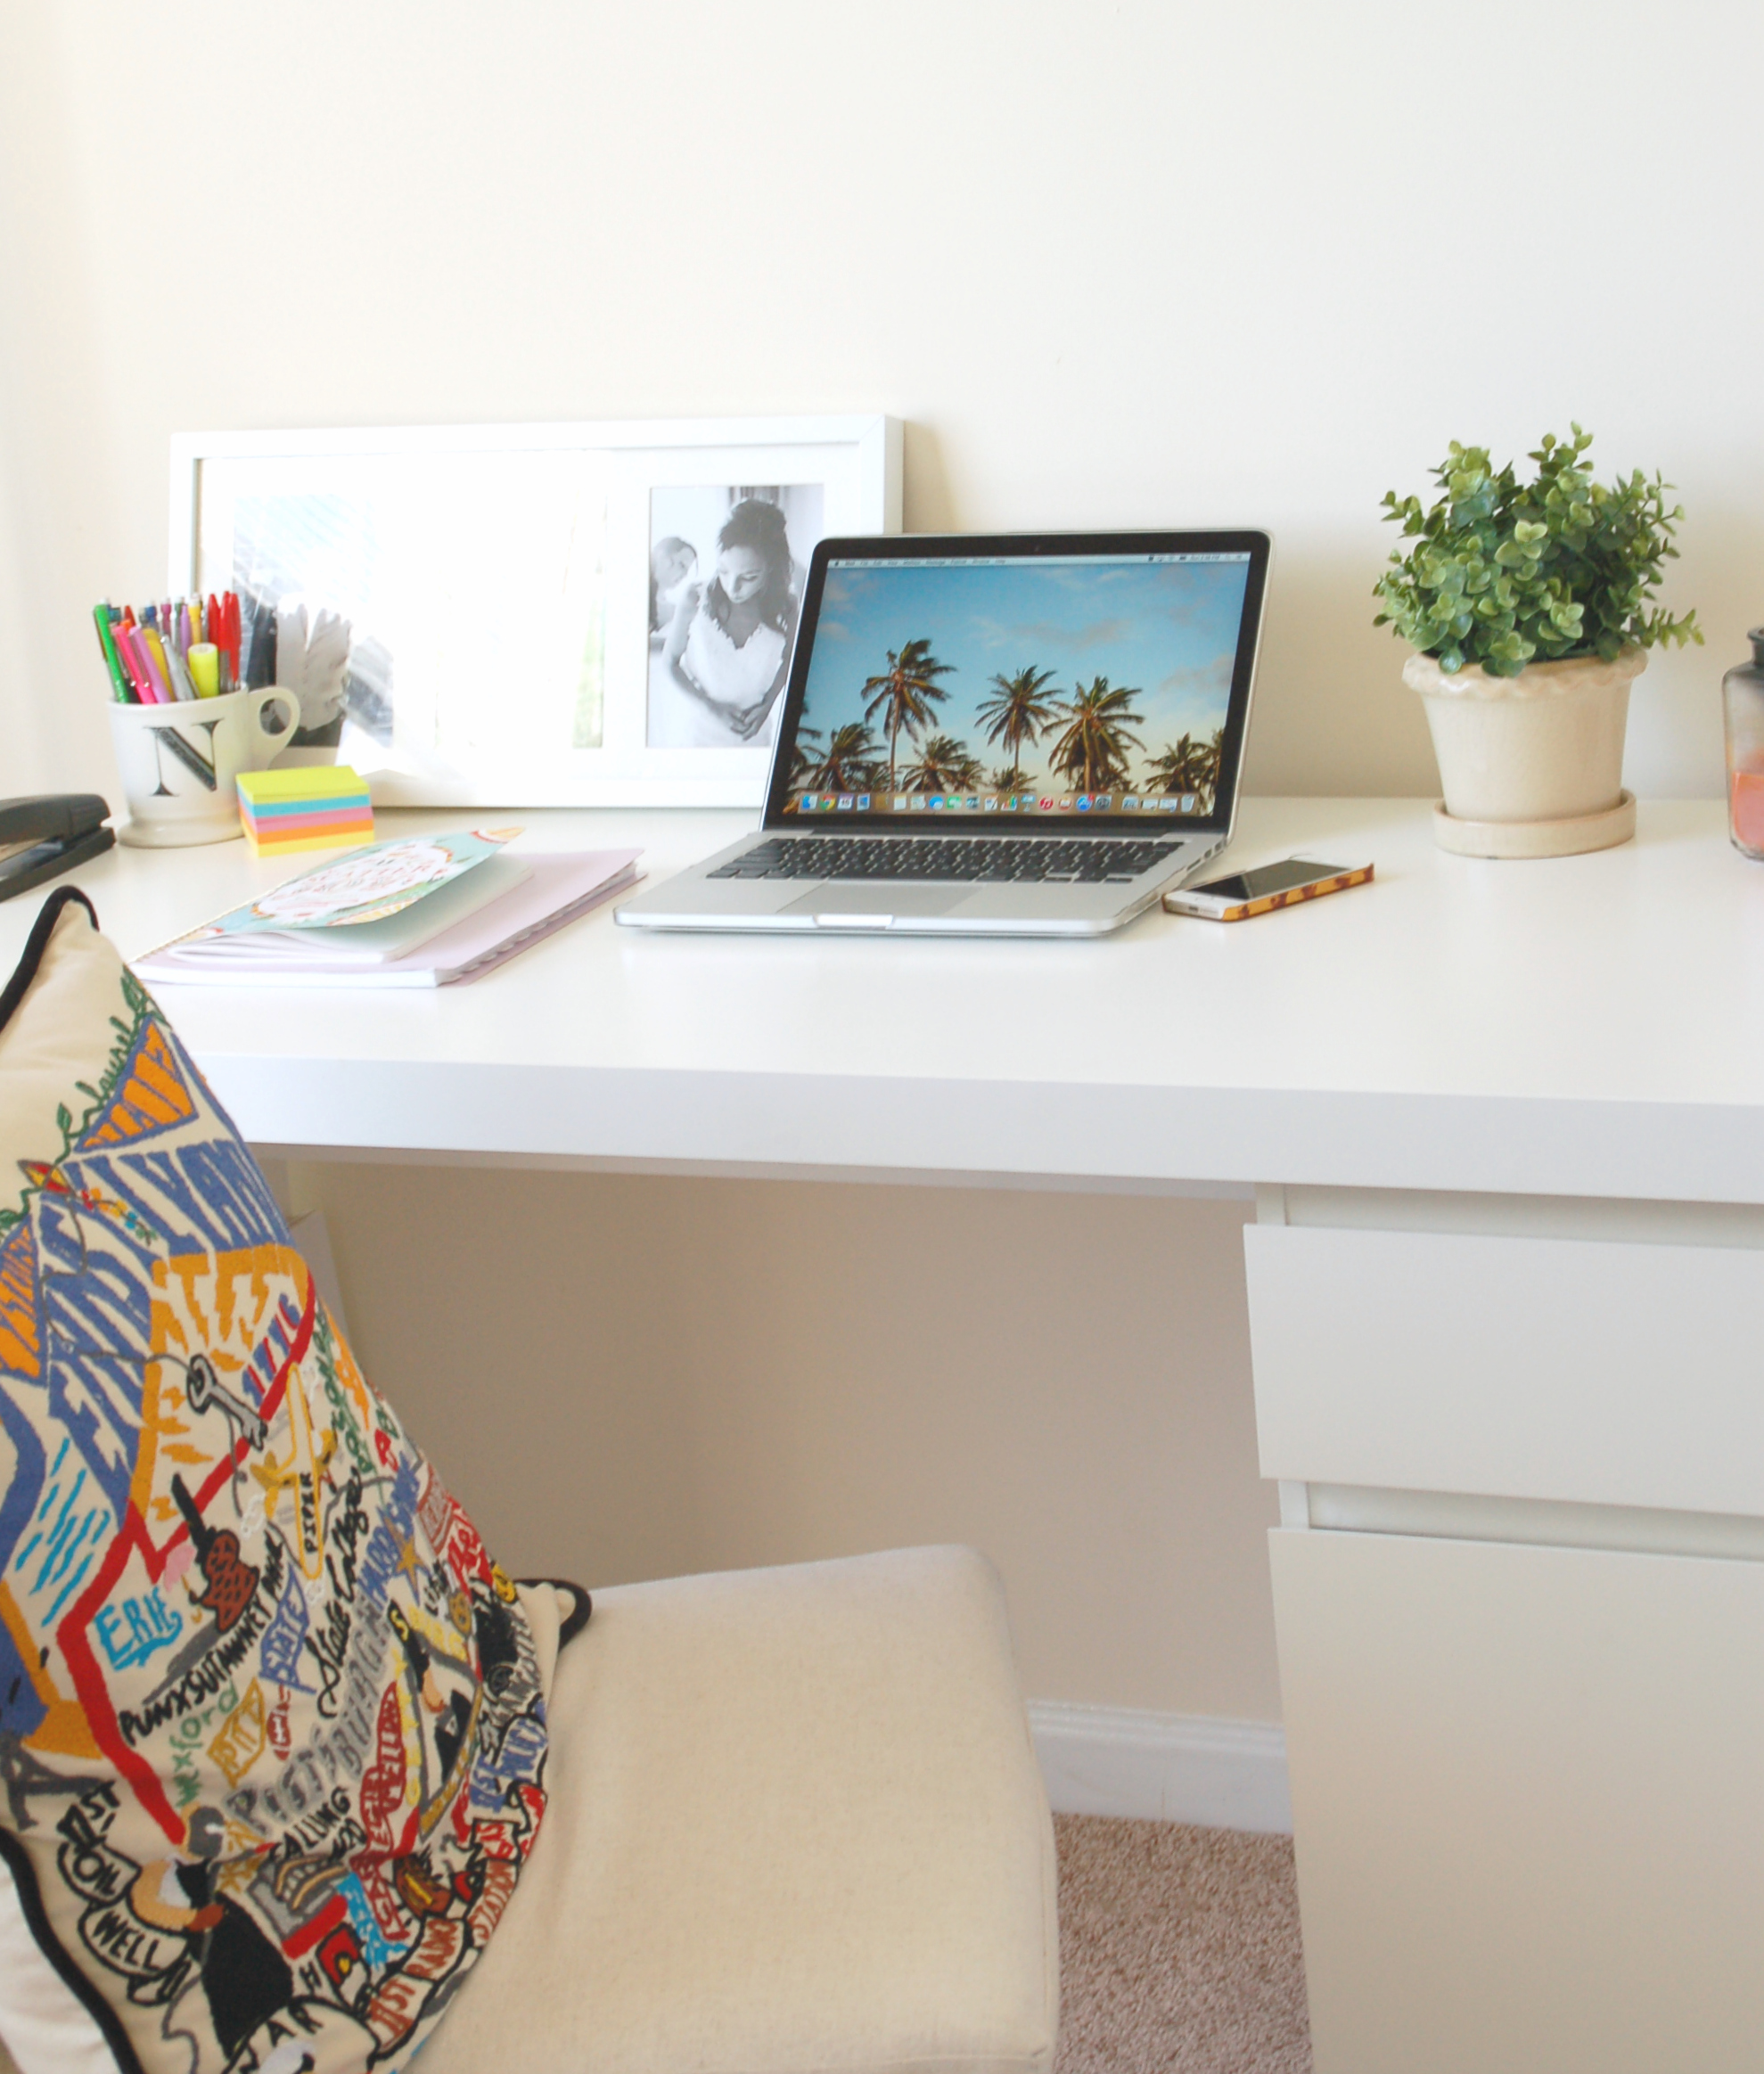 blog while working 9 to 5